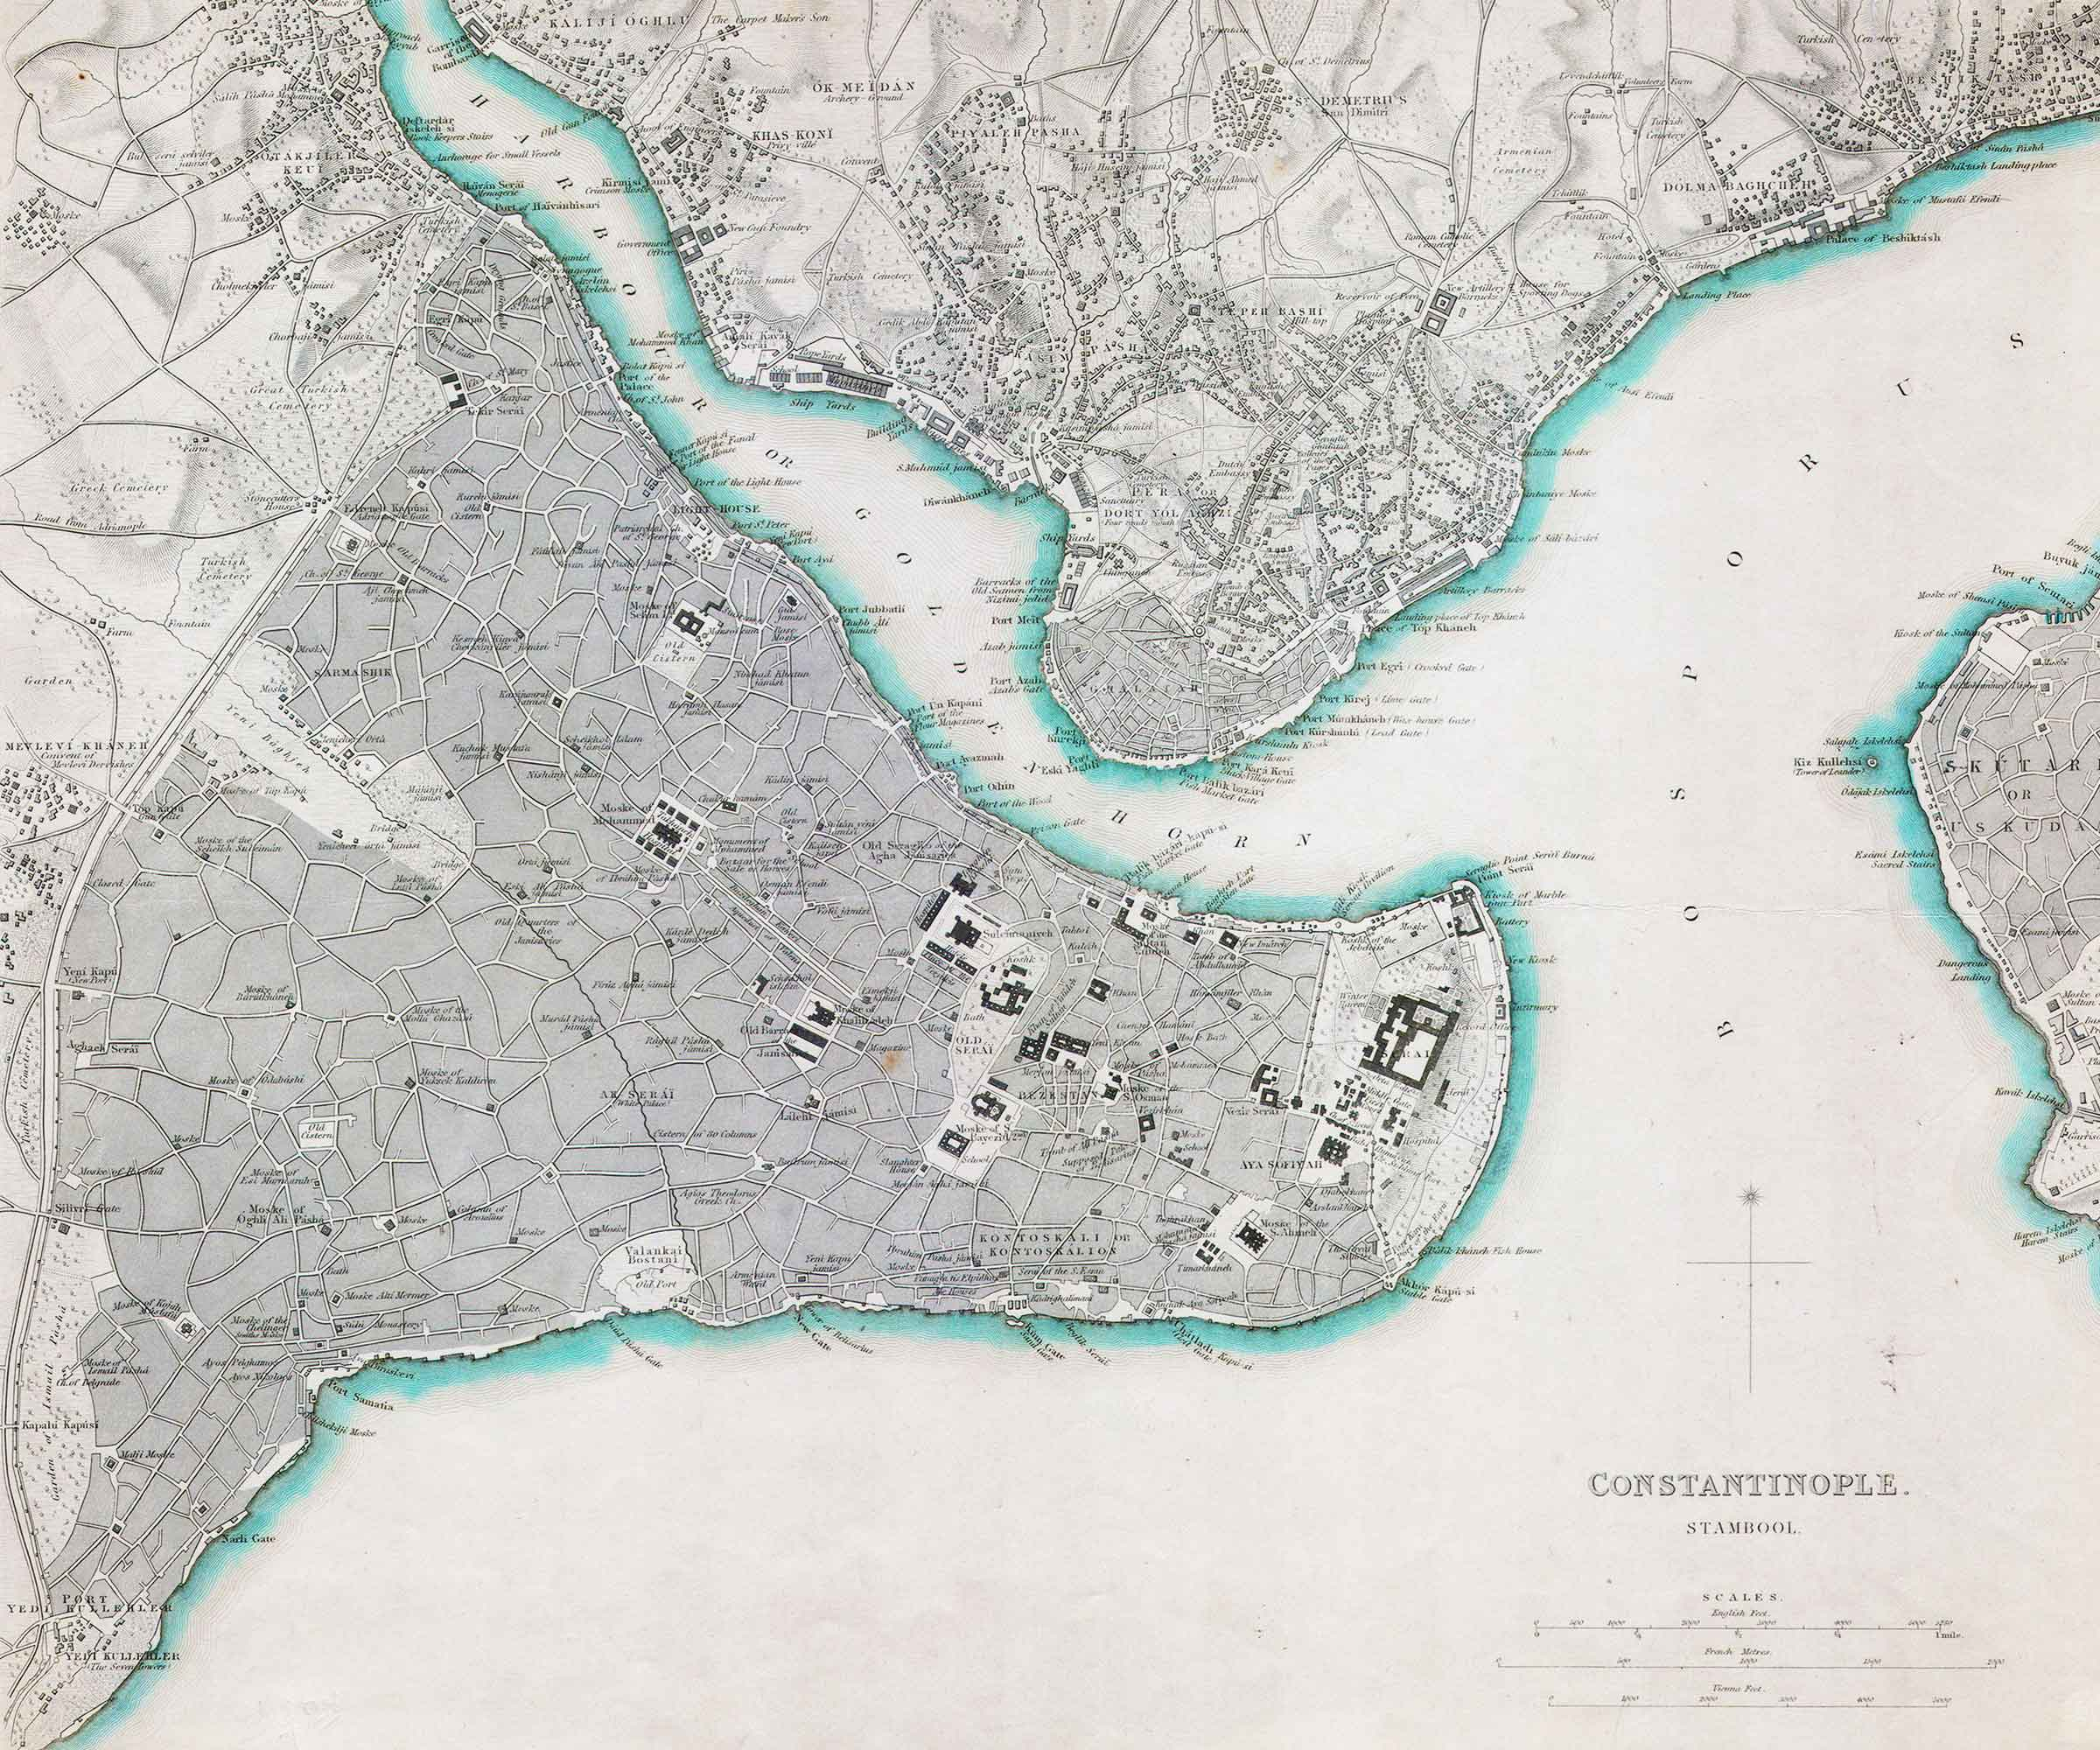 1840 Map of Constantinople – Istanbul, Turkey | SDUK steel plate engraving | Asst Professor Steven A Martin